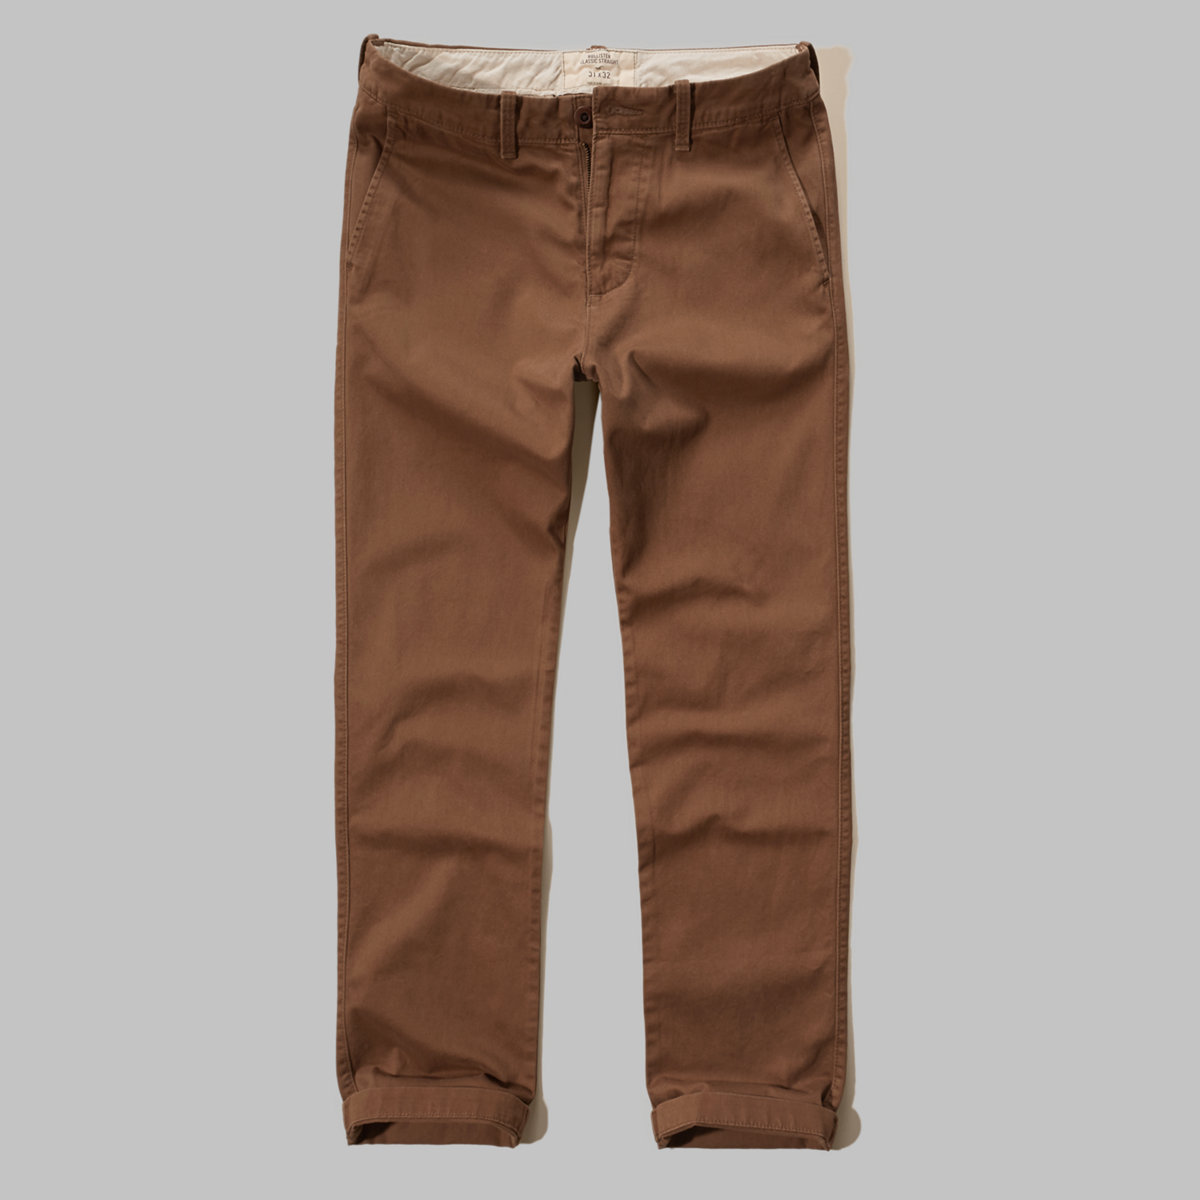 Hollister Classic Straight Zipper Fly Chinos